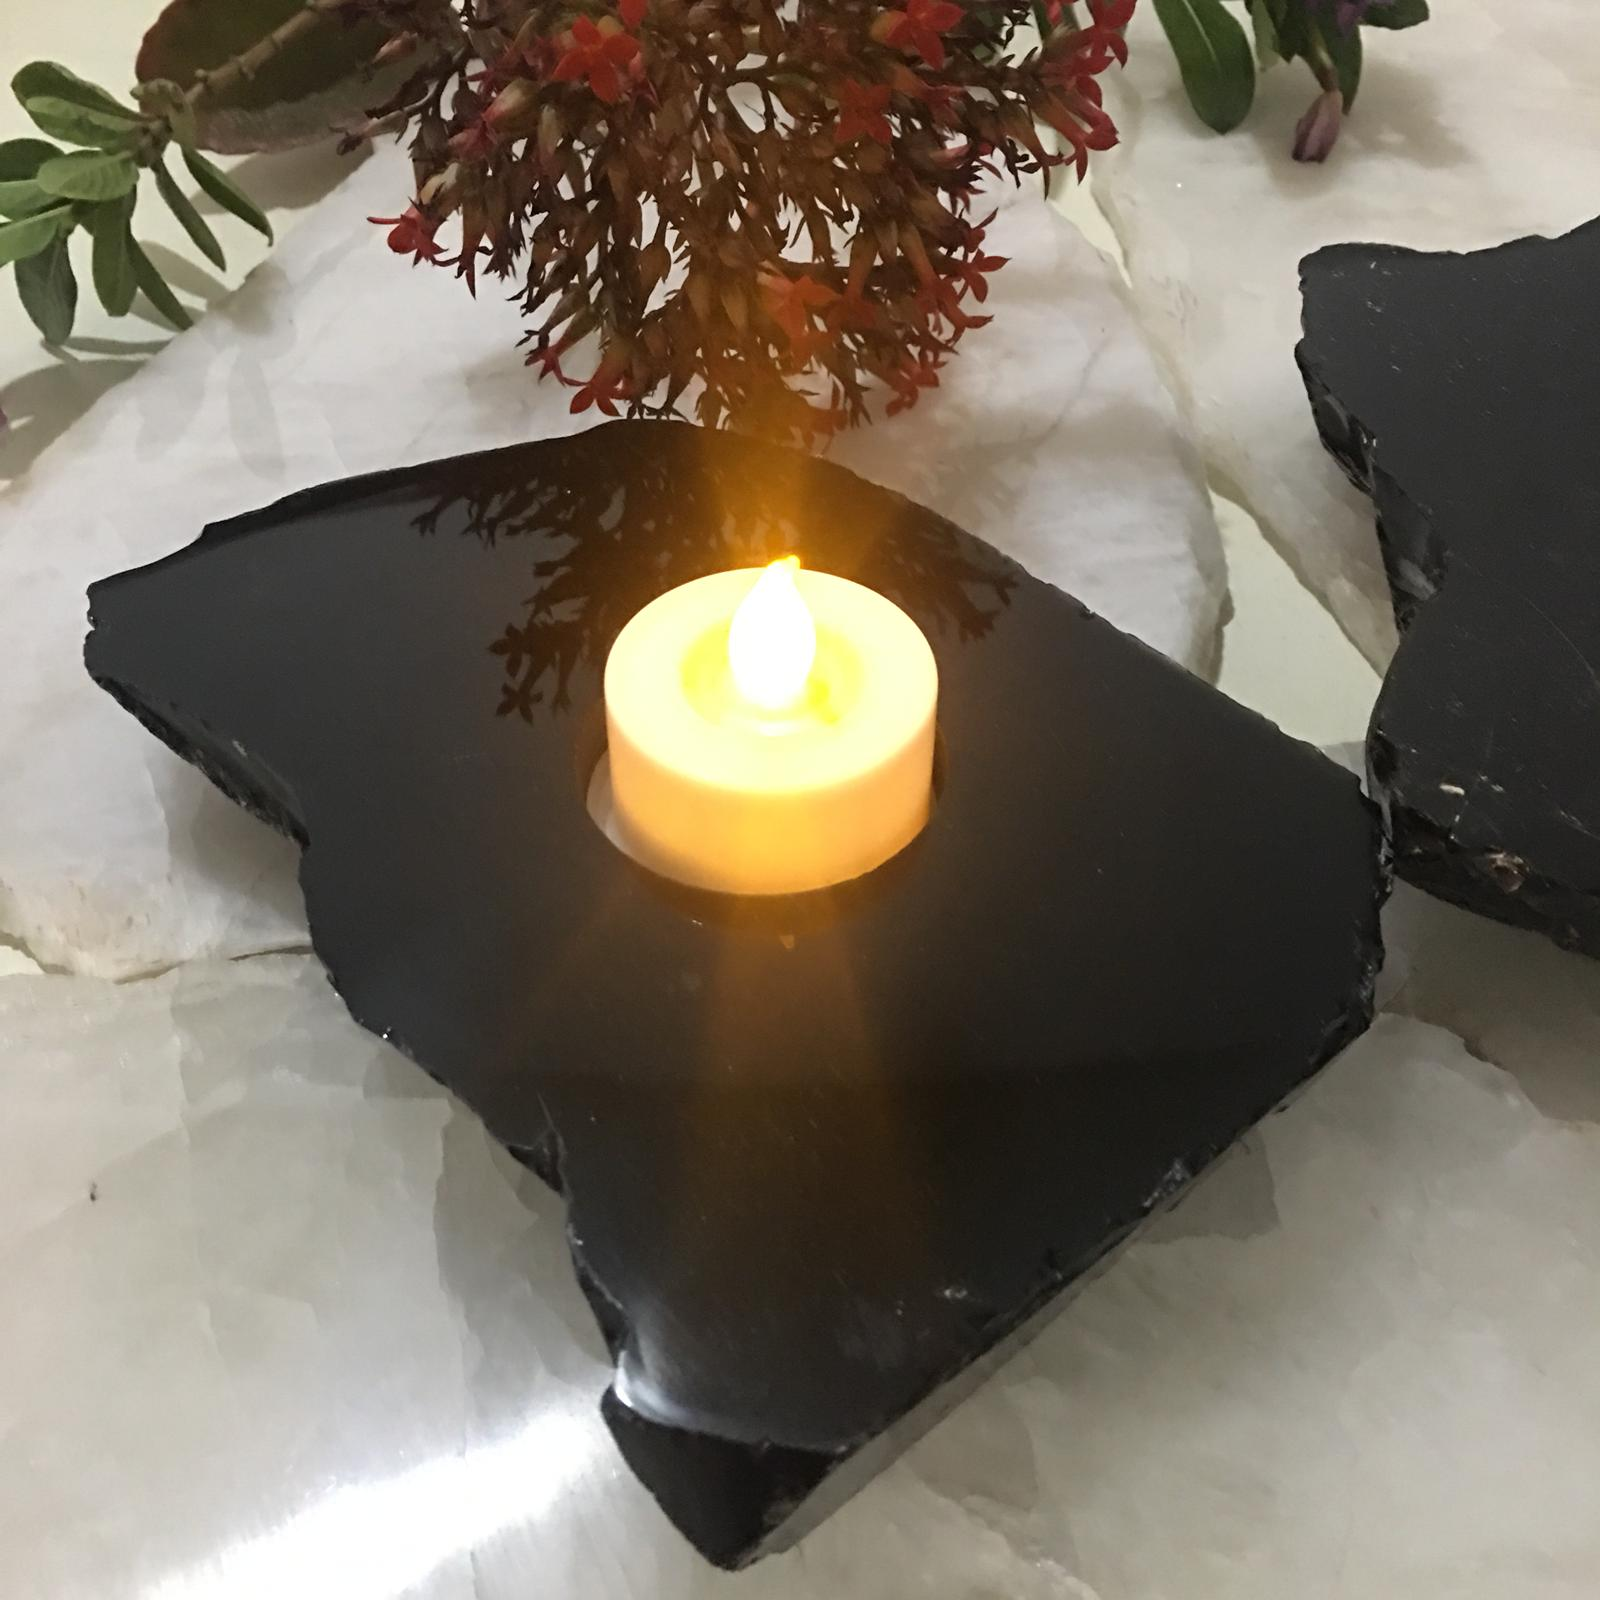 Stones from Uruguay - Black Obsidian Slice Candle Holder